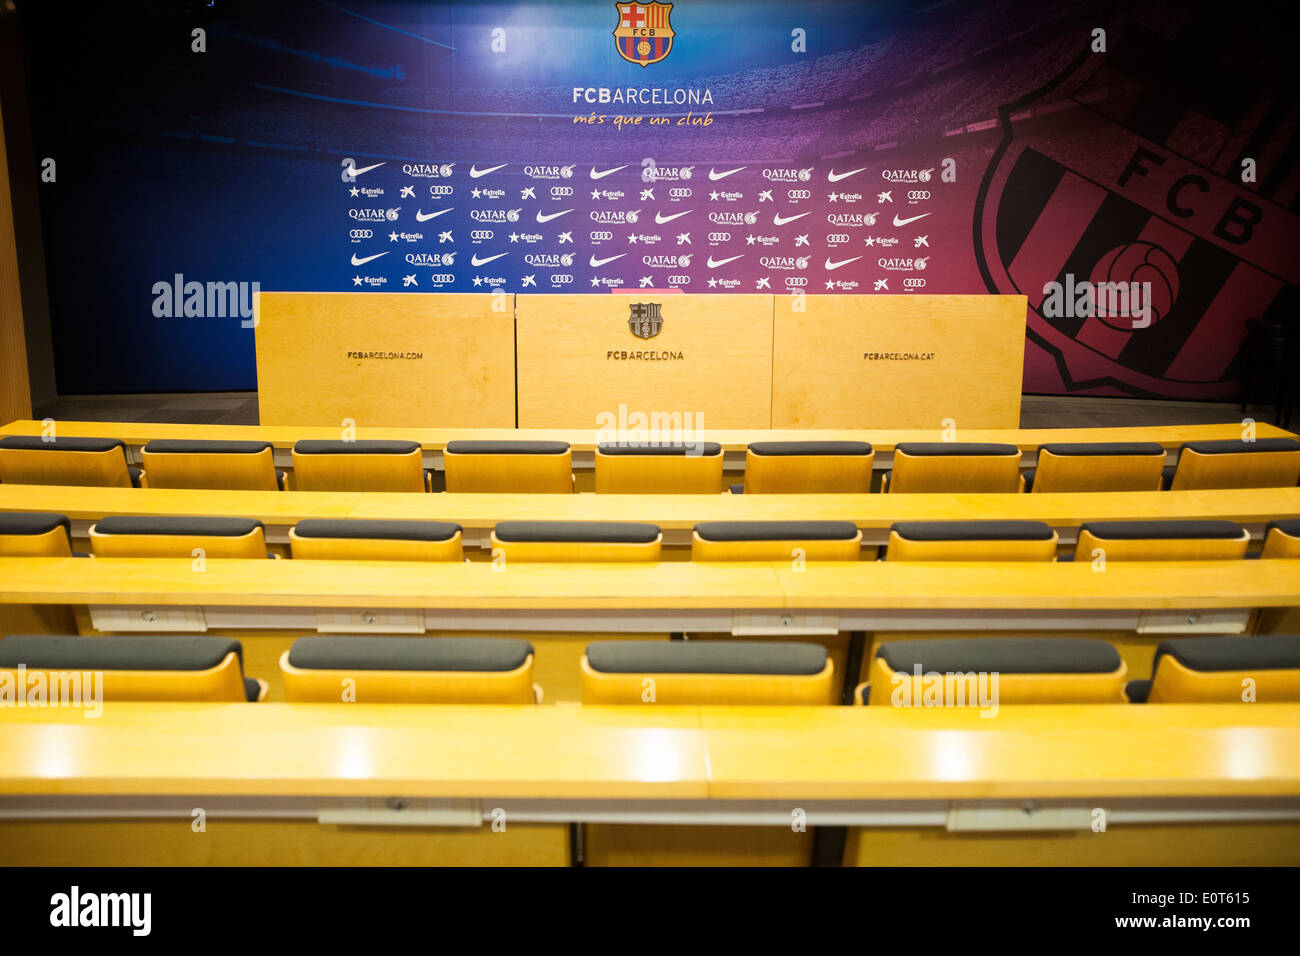 Press conference room in the Football Club Barcelona stadium - Stock Image